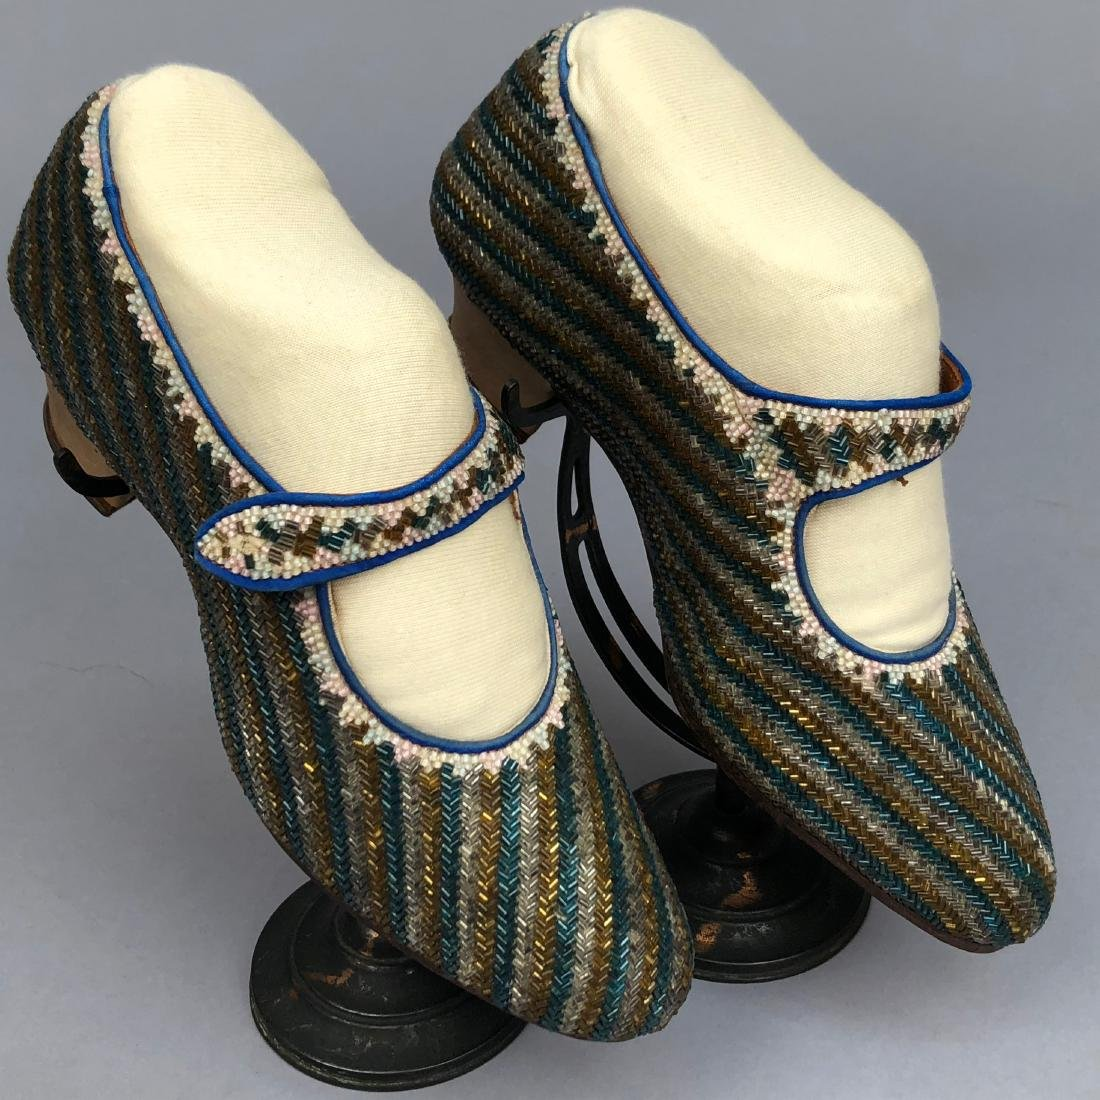 BEADED PUMPS with ANKLE STRAP, c. 1925 - 2